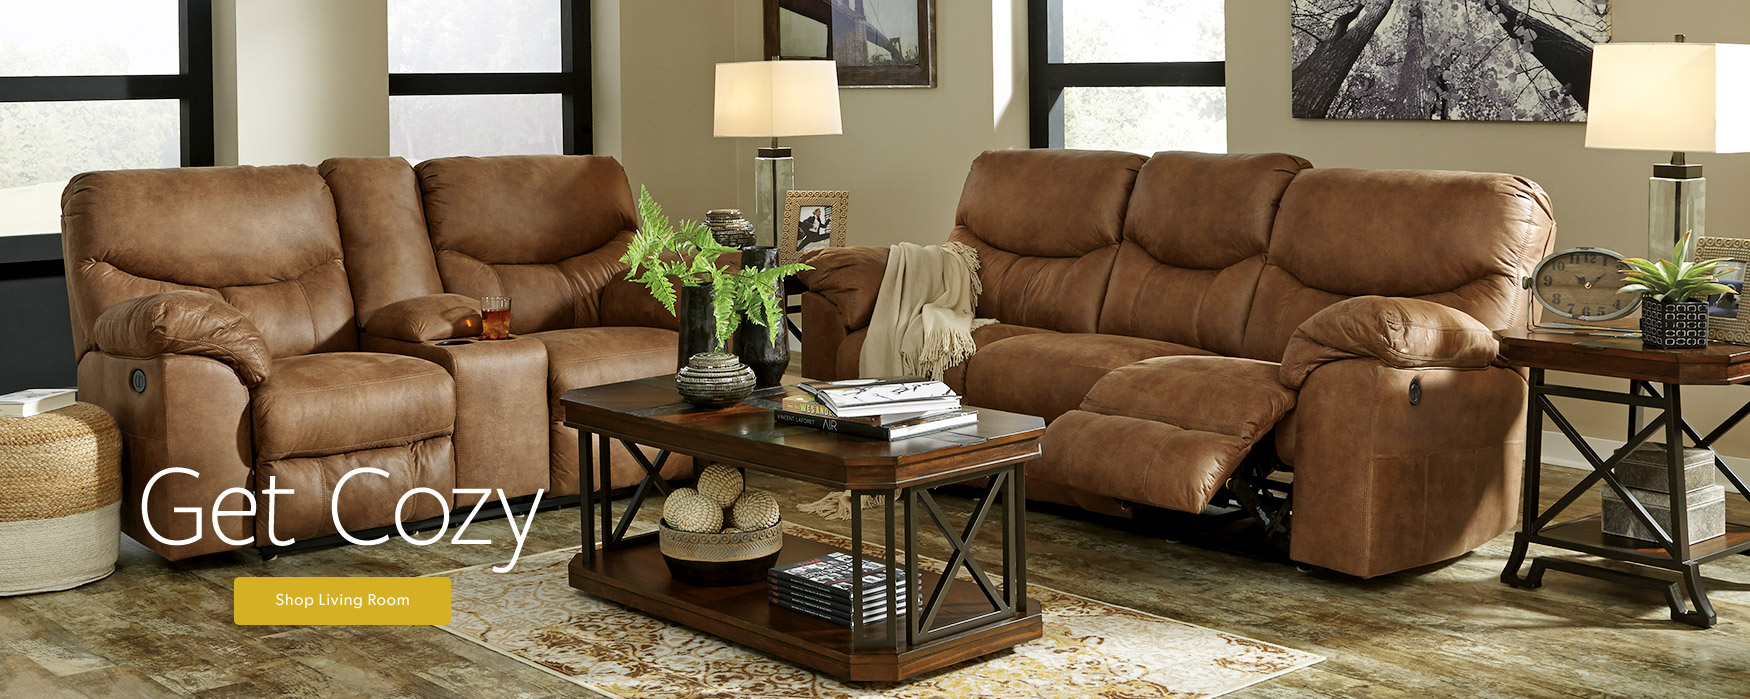 5 Star Furniture Houston